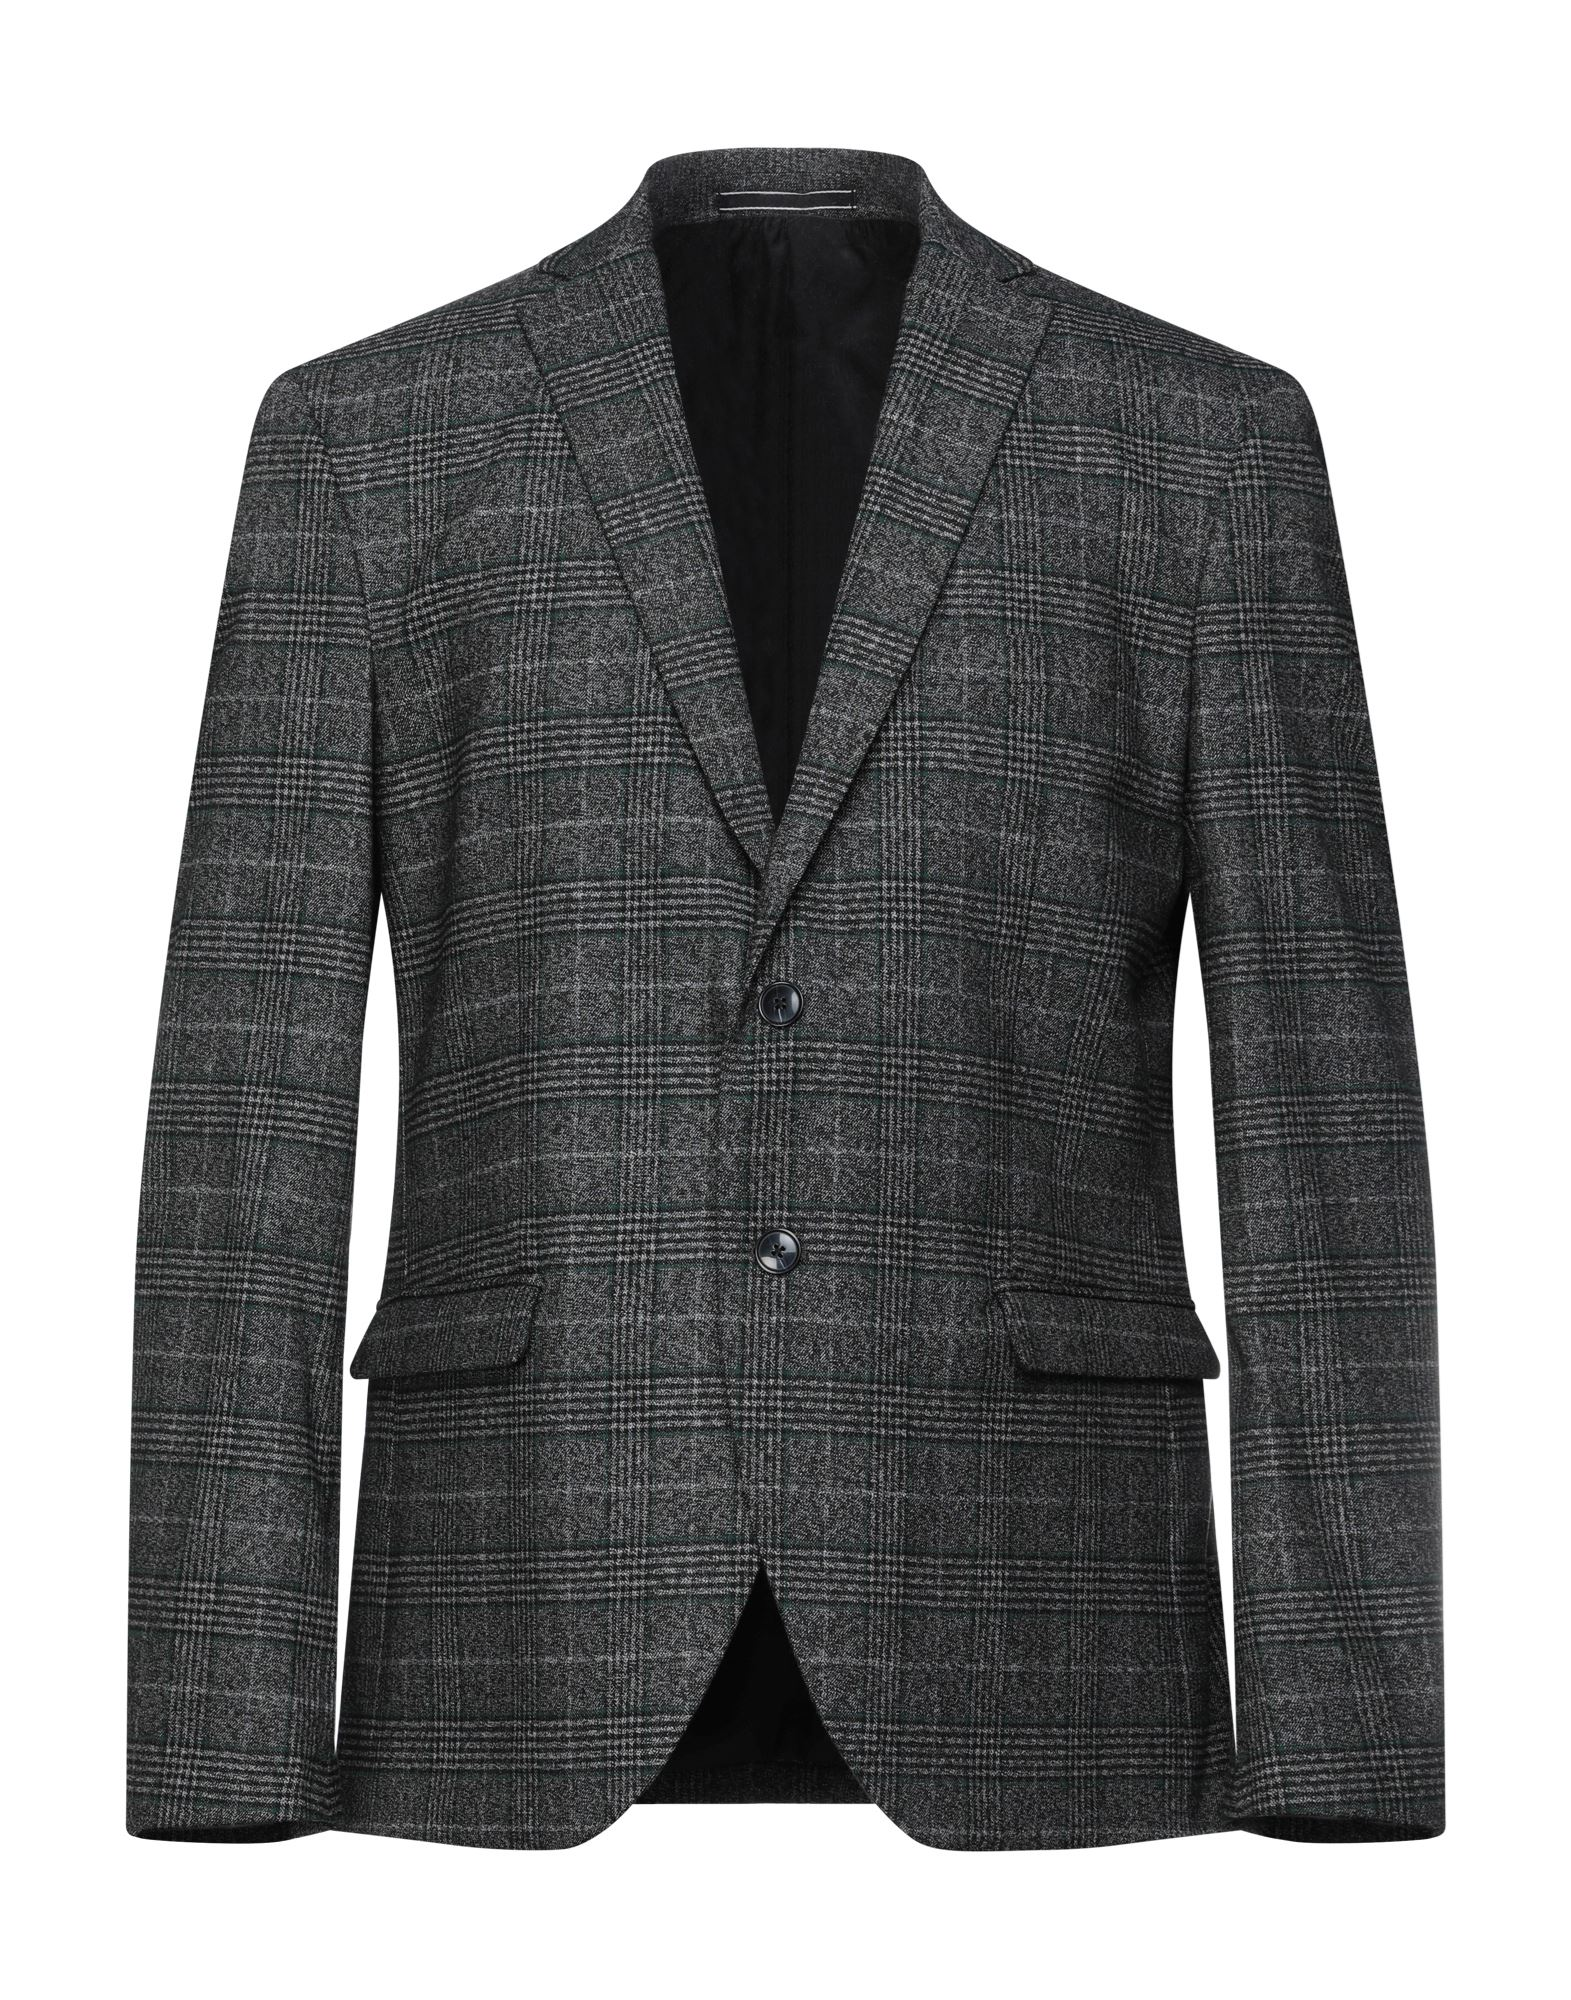 SELECTED HOMME Пиджак selected homme пиджак